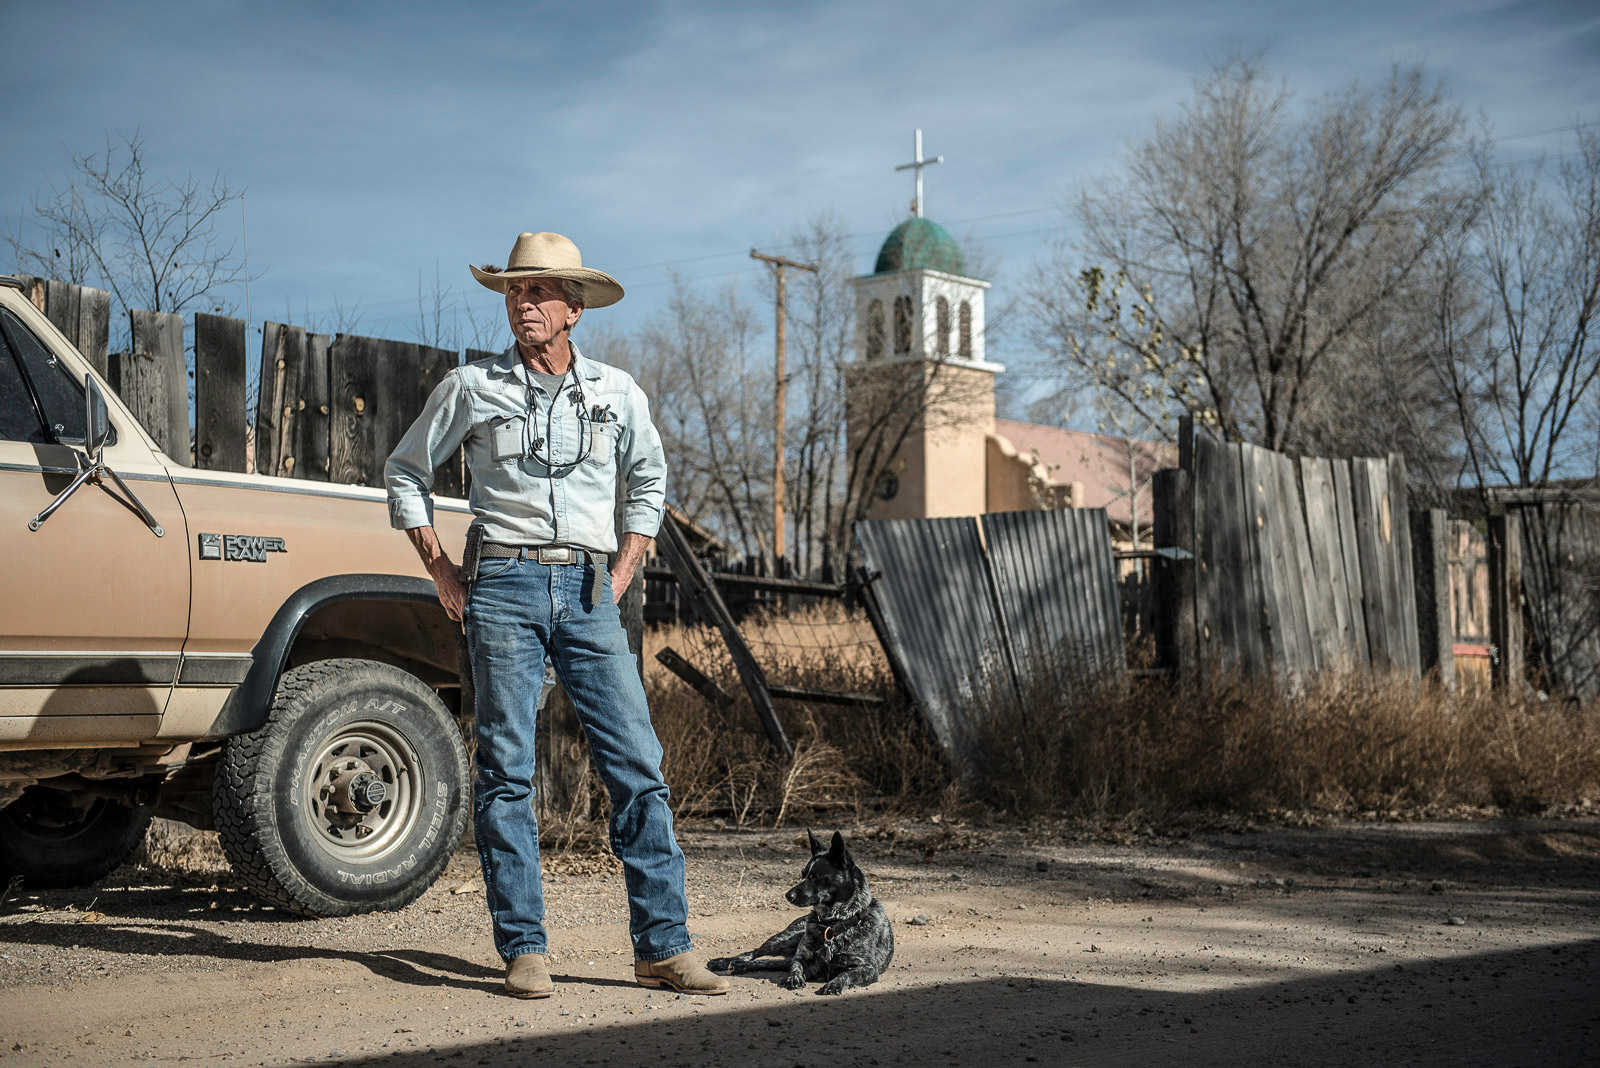 David   and his dog Perdida . During the week he works as a constructor. I asked him to pose for a while. I liked his appearance with his hat and his sweet dog. The location was perfect, the car, the church and his hat.....all in the same color. (Cerrillos, New Mexico, US)